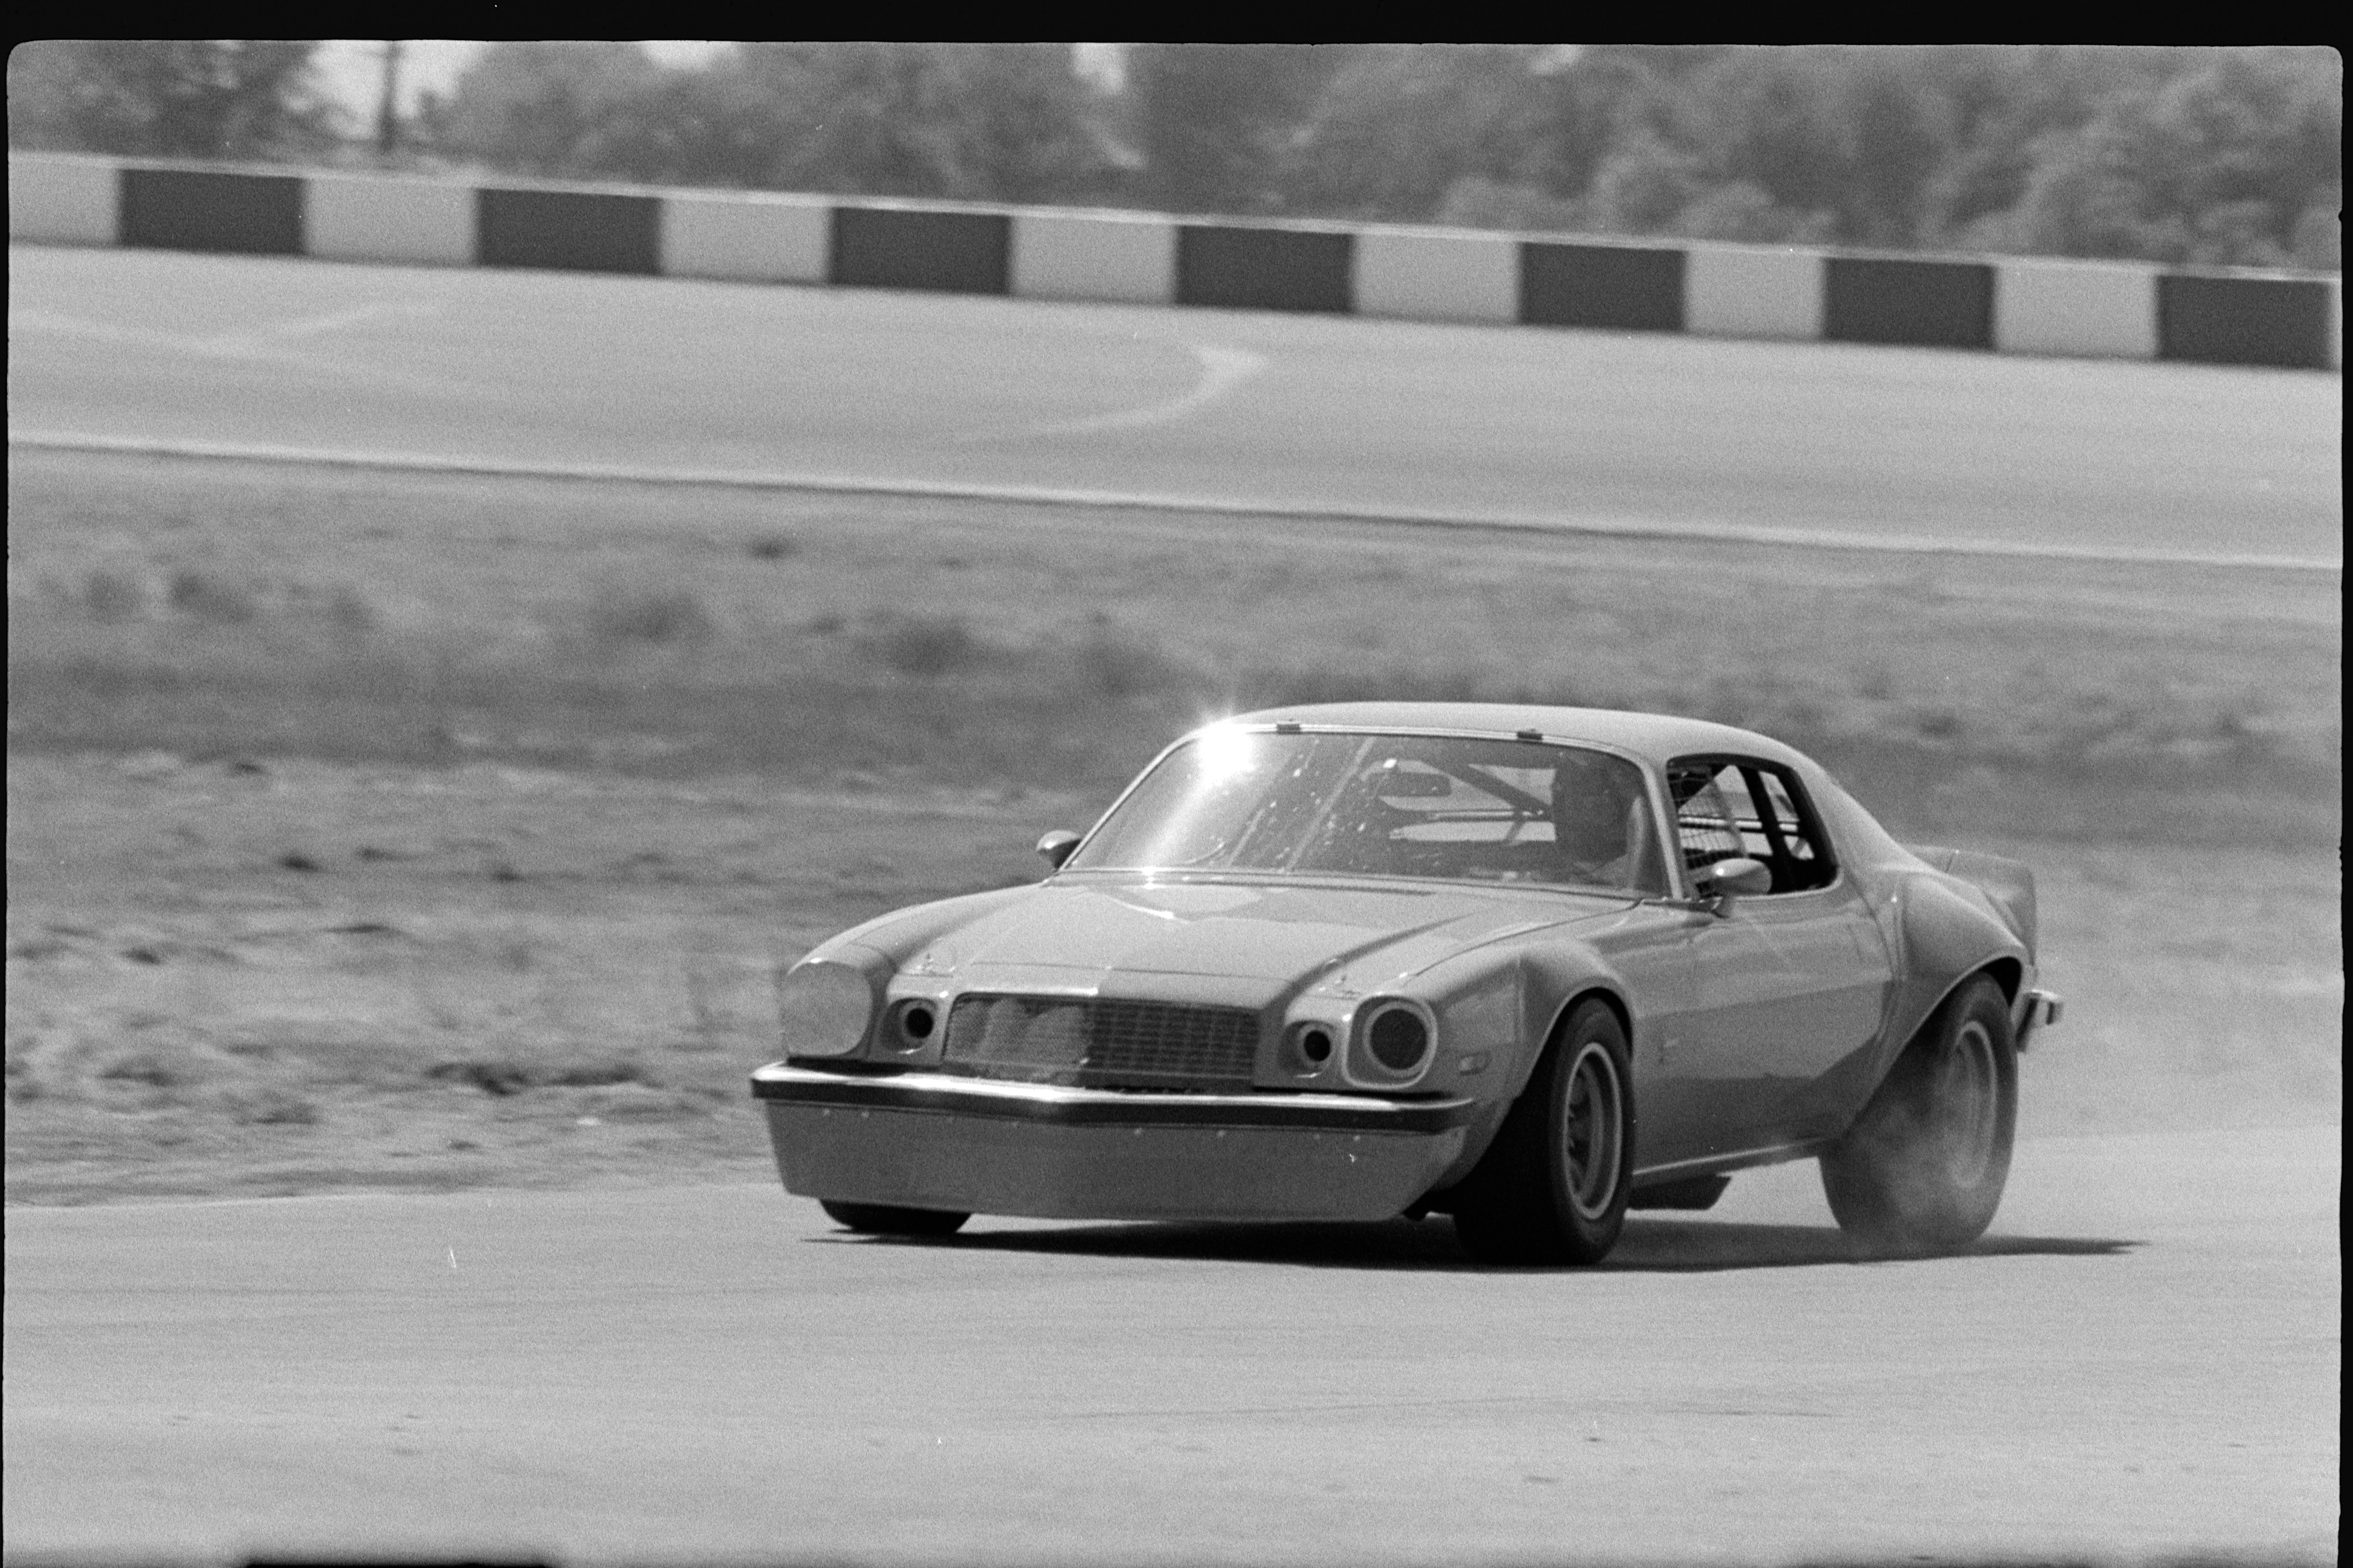 The First IROC Chevrolet Camaros Built by Roger Penske and Mark Donohue in 1974